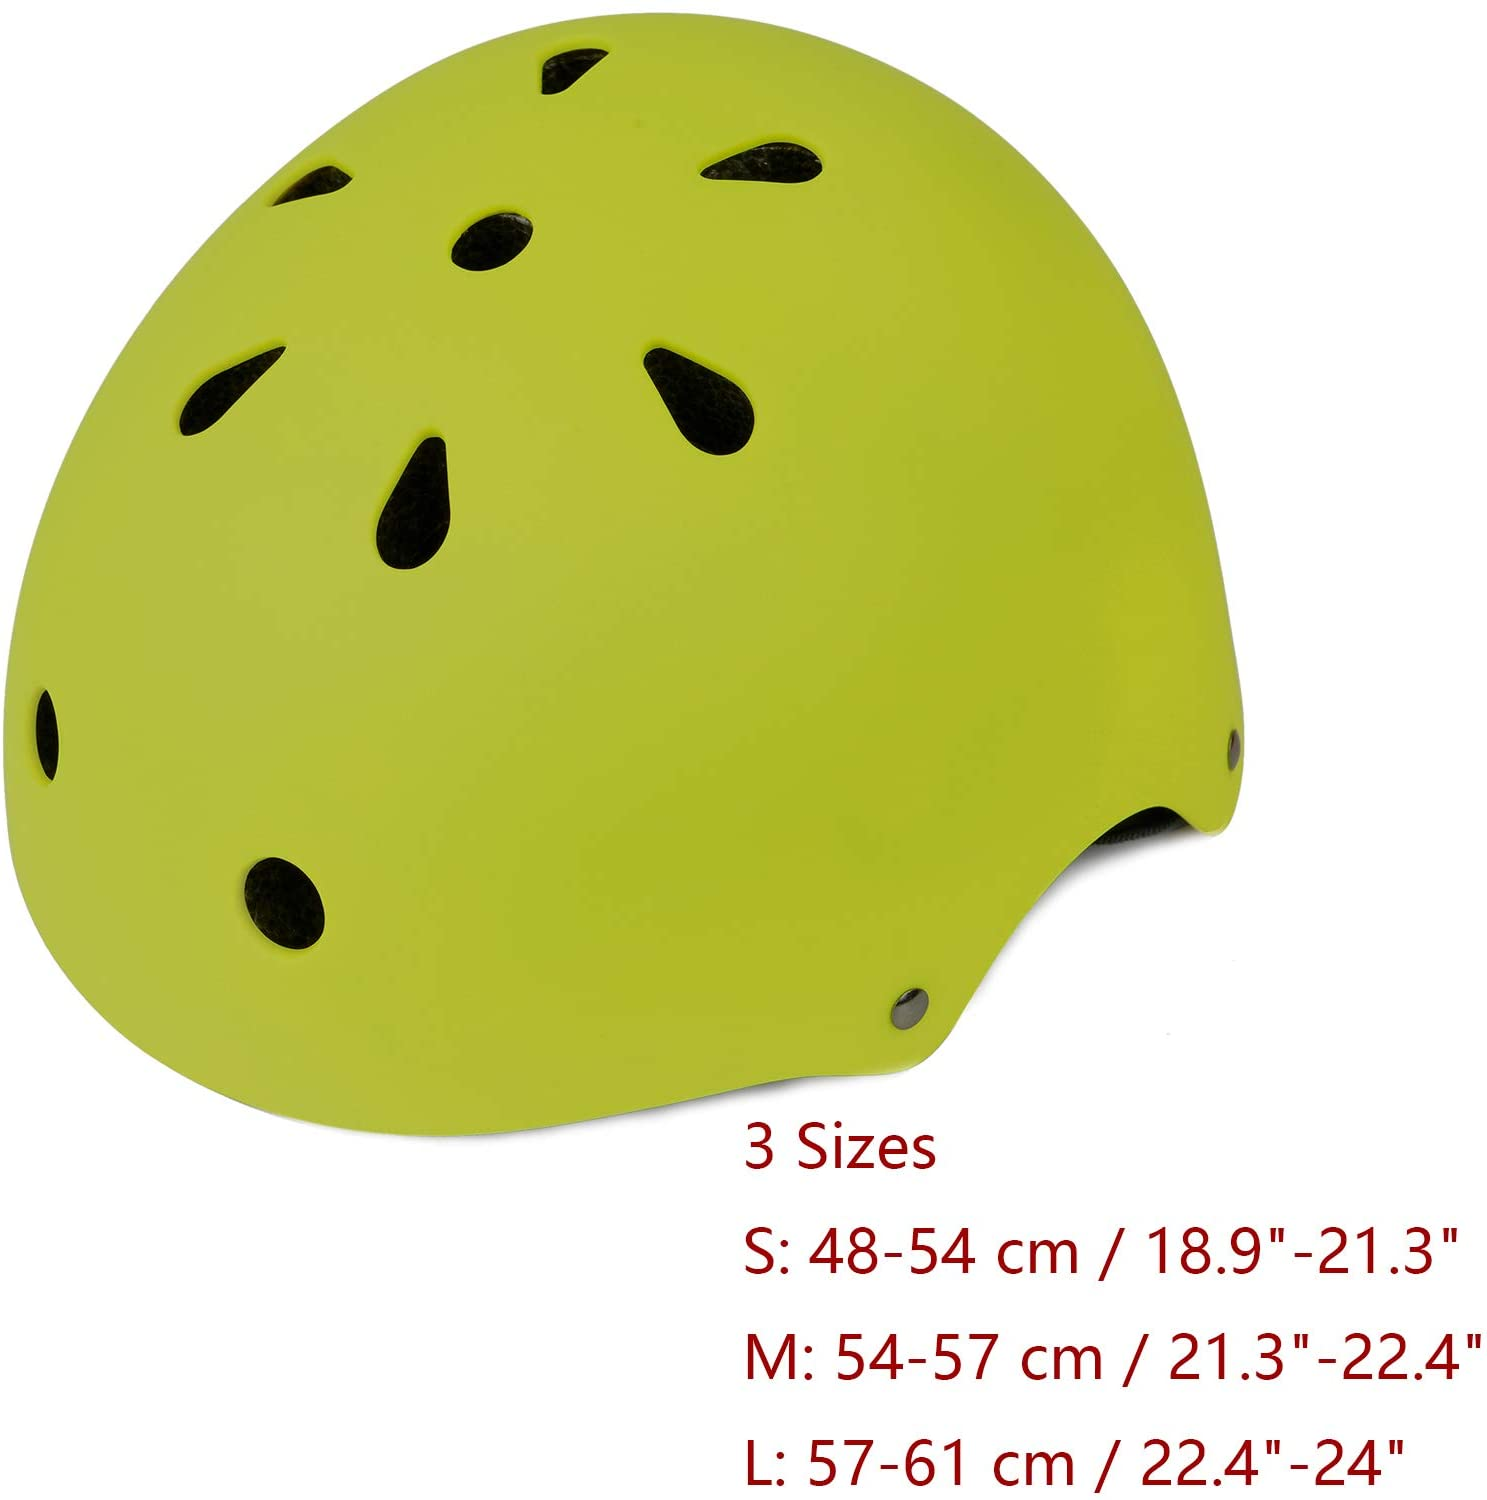 Adjustable and Multi-Sport from Toddler to Youth 3 Sizes OUWOER Kids Bike Helmet CPSC Certified